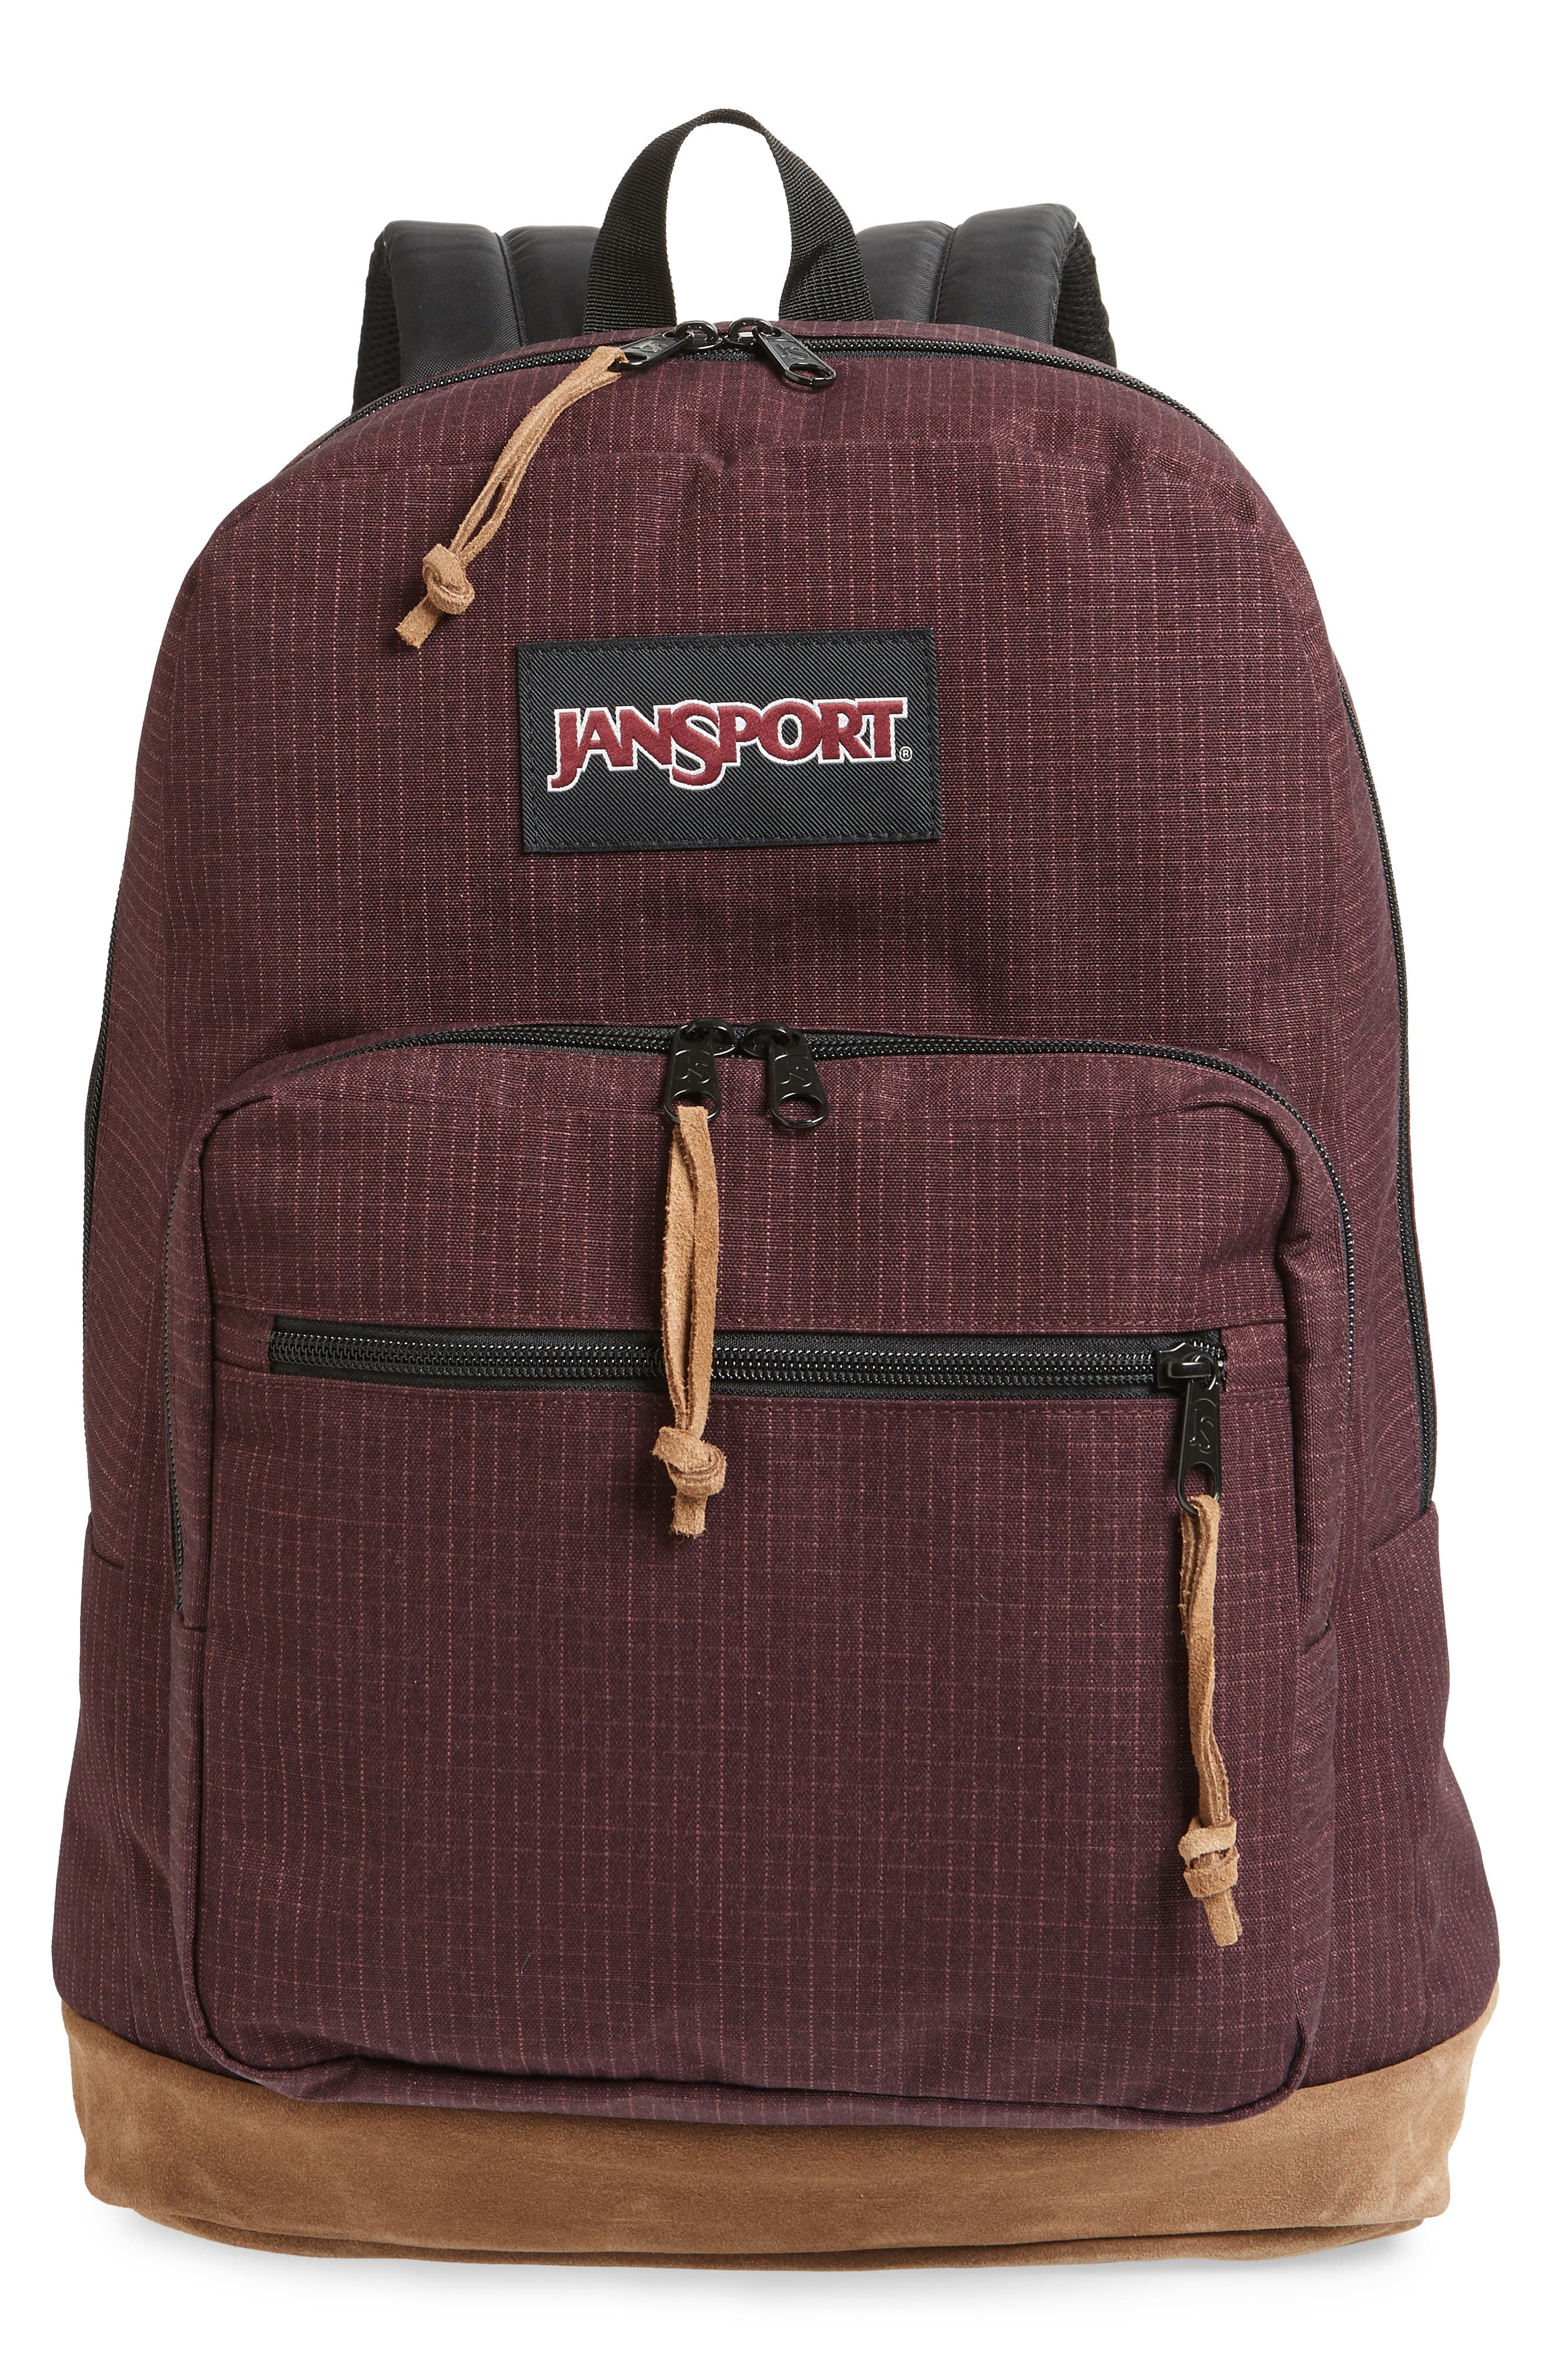 JANSPORT 'Right Pack' Backpack - Burgundy in Micro Grid